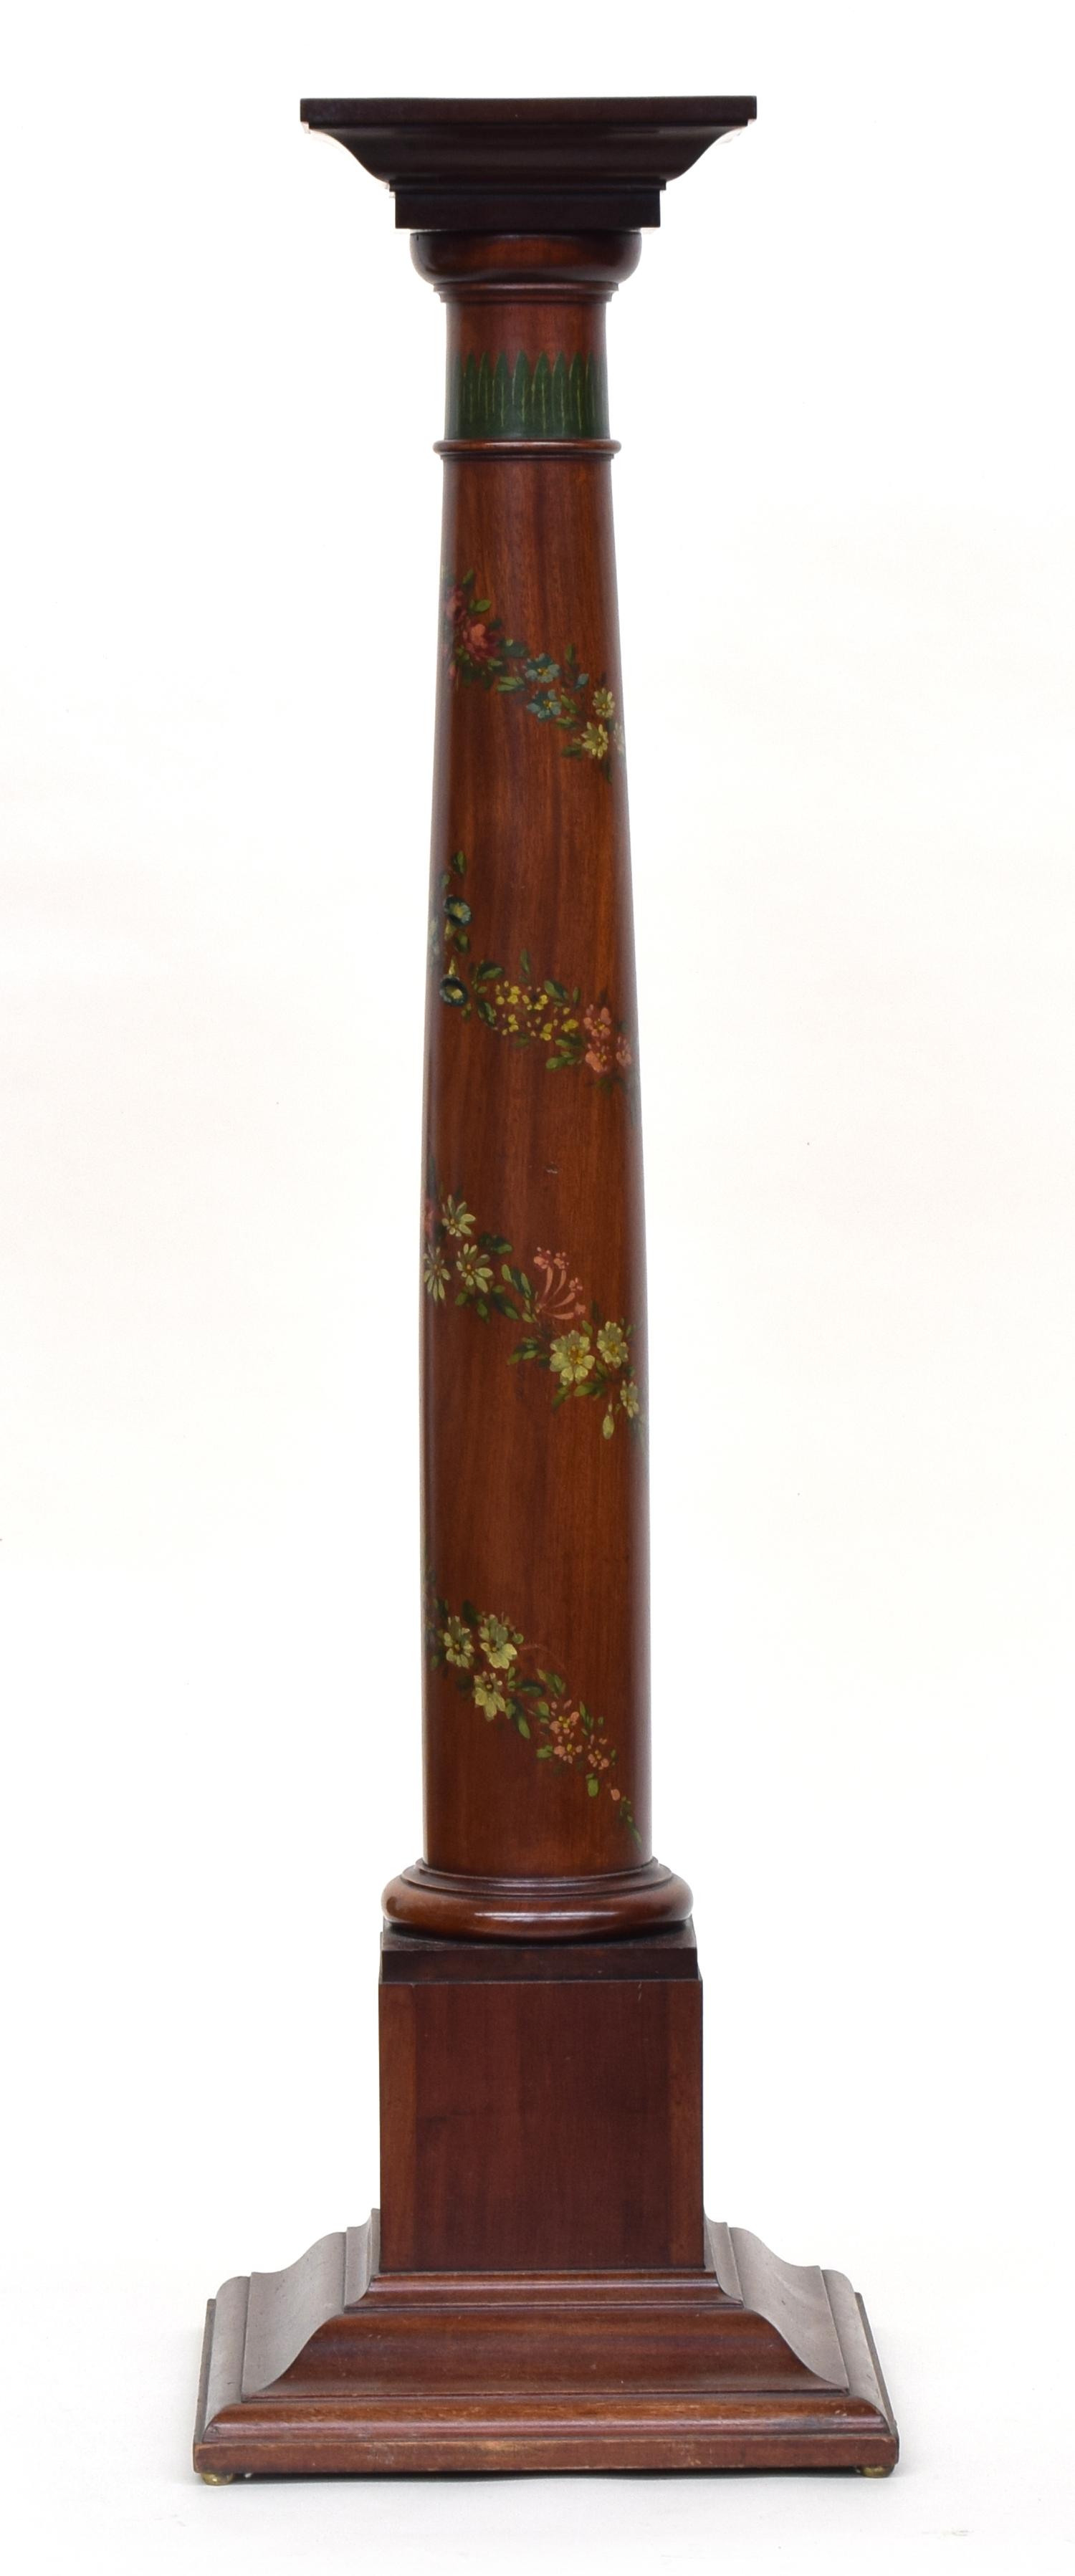 A 19th century mahogany pot stand, painted with spiralling floral decoration, on square pedestal